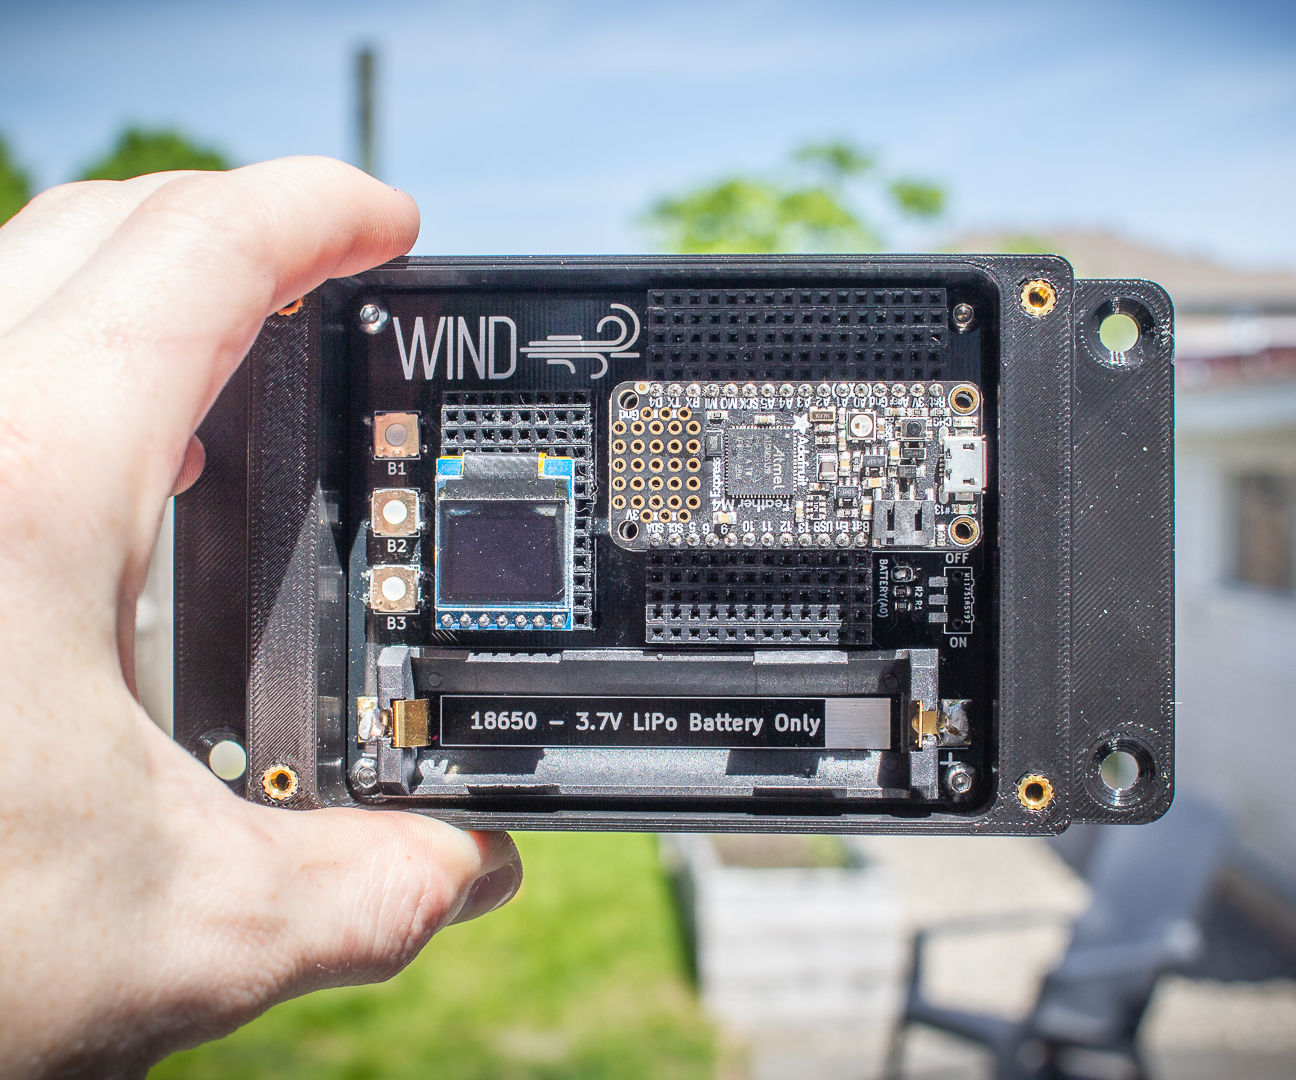 WIND - Project Accelerator for the Adafruit Feather